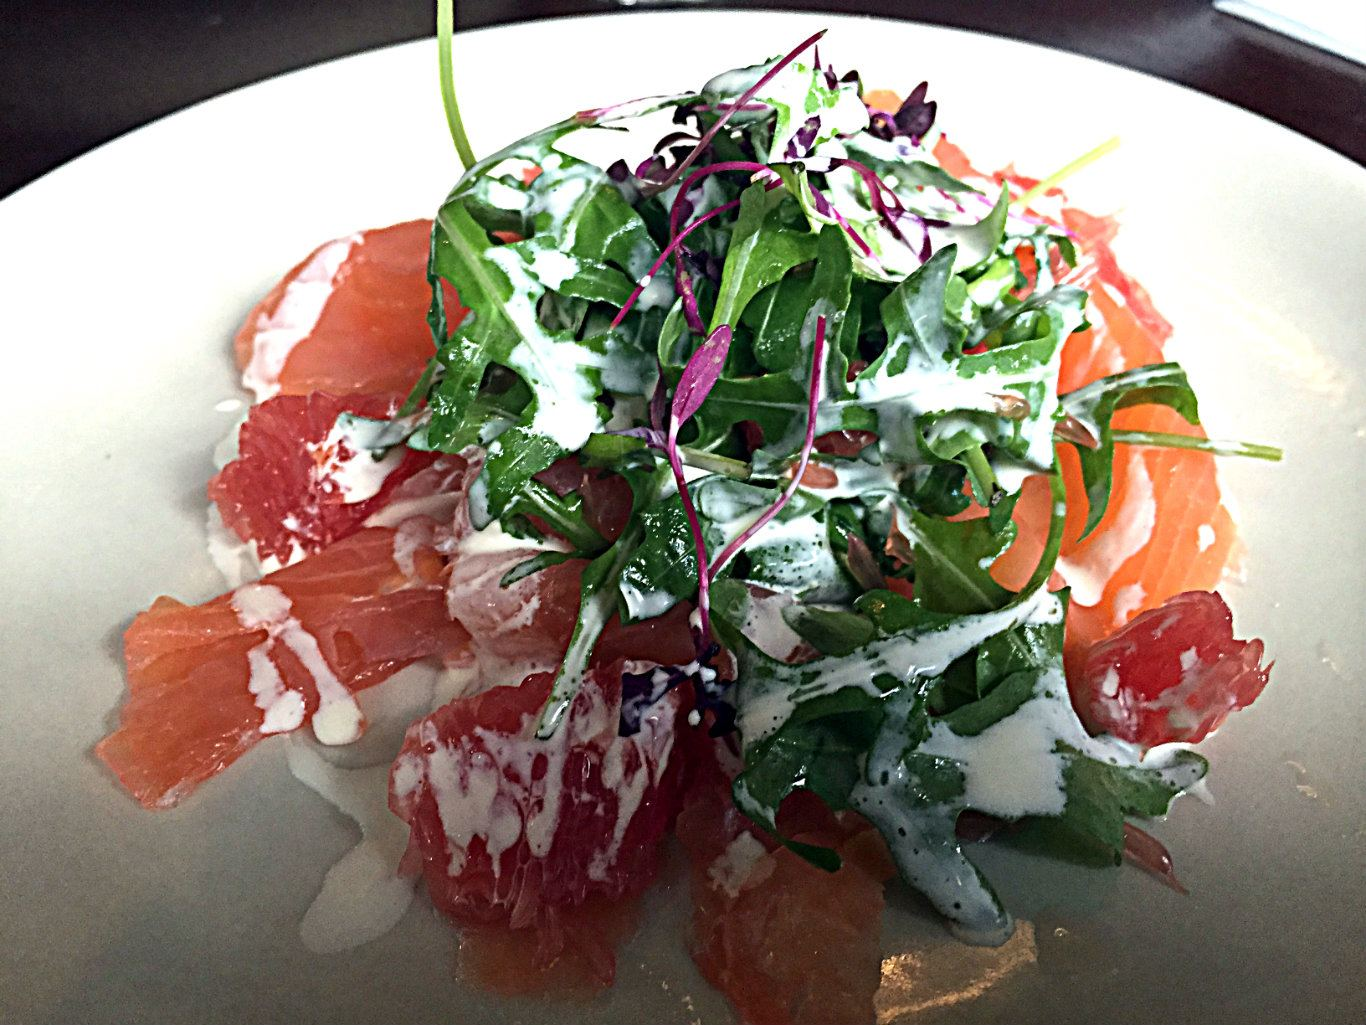 Pimped up with grapefruit and gin cream. Photo: SE